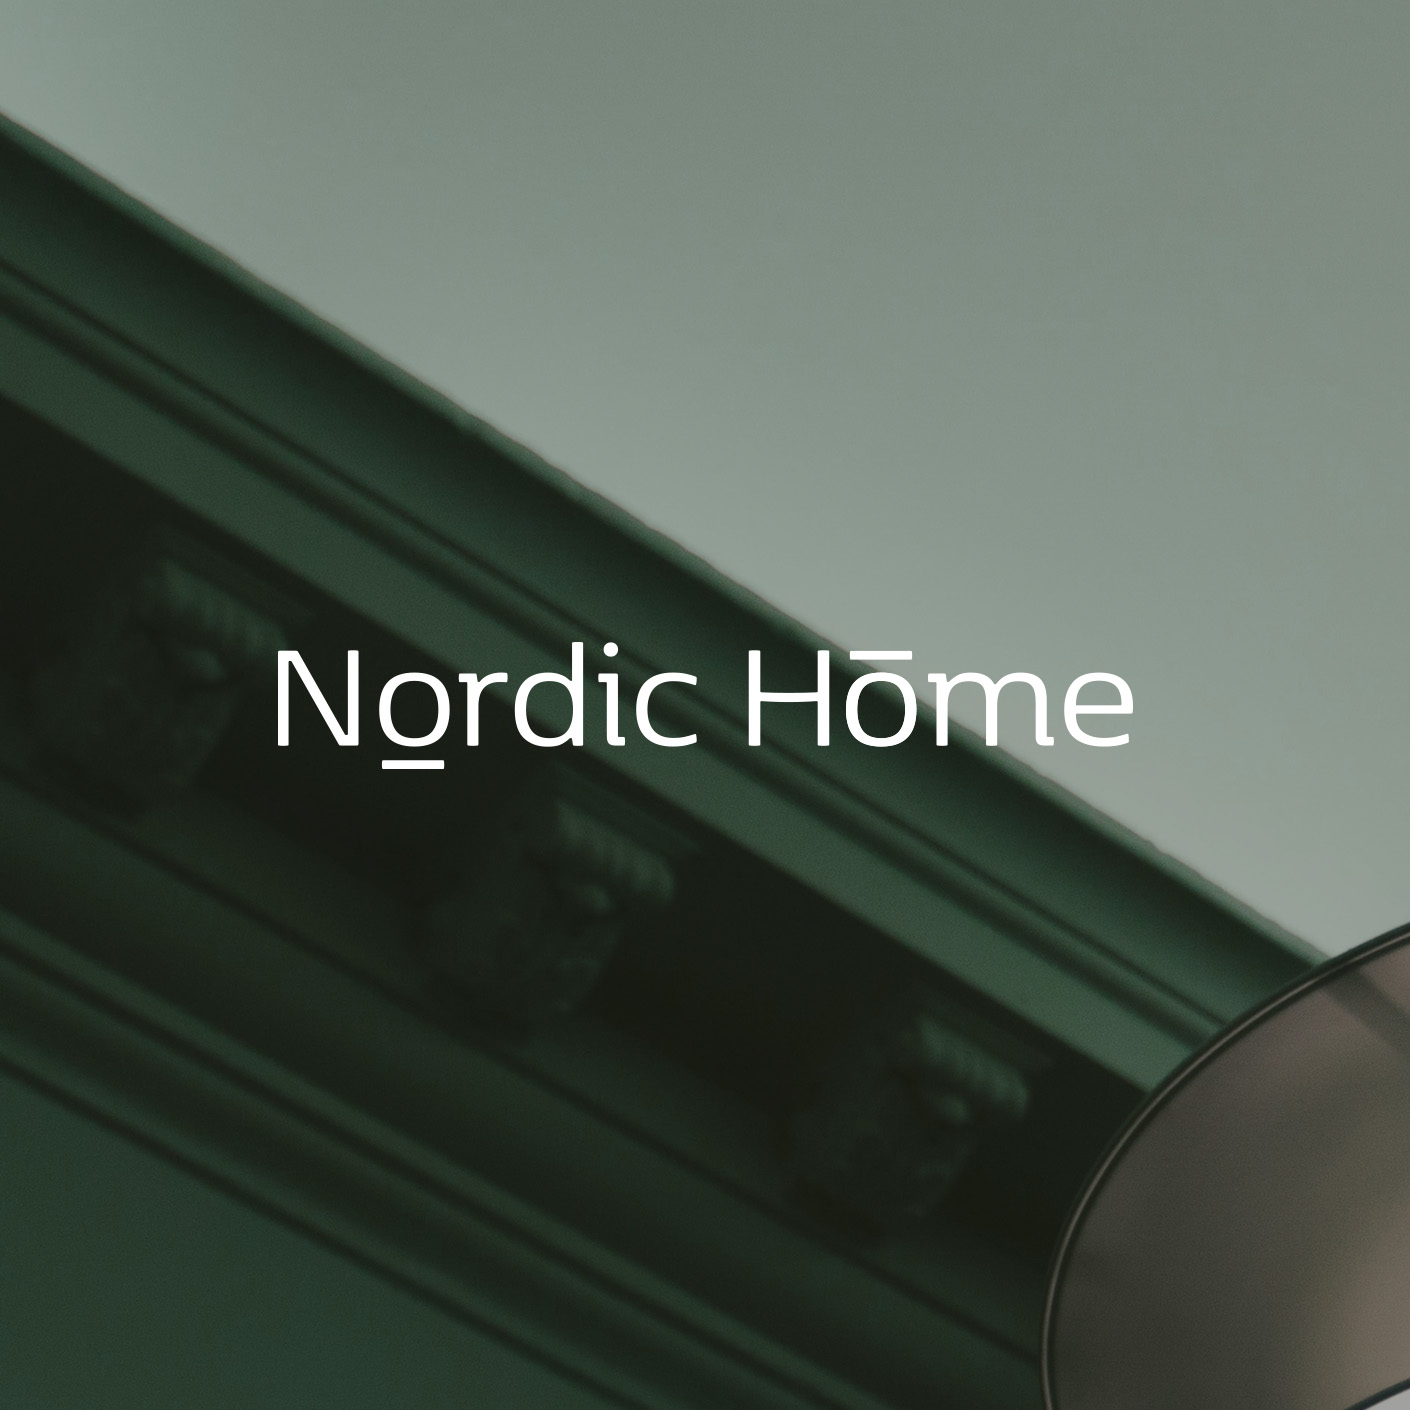 Nordic Home